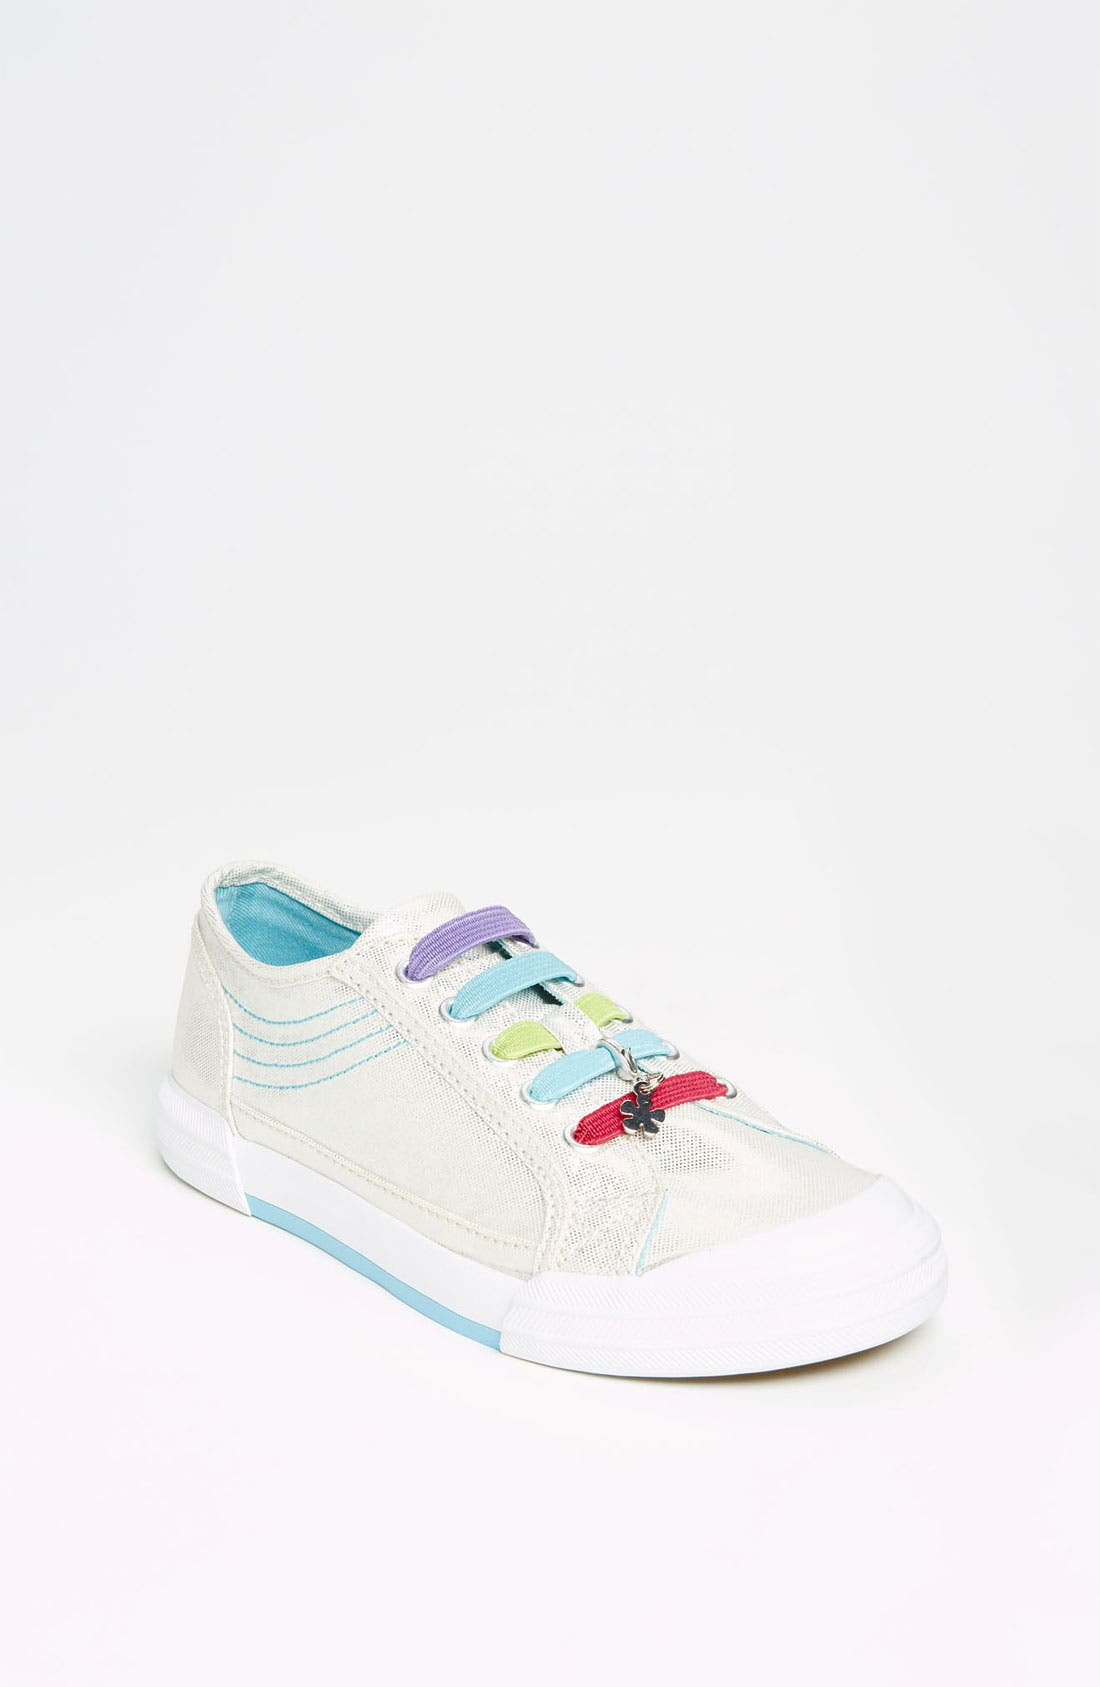 Main Image - Keds® 'Carolee' Sneaker (Toddler, Little Kid & Big Kid)